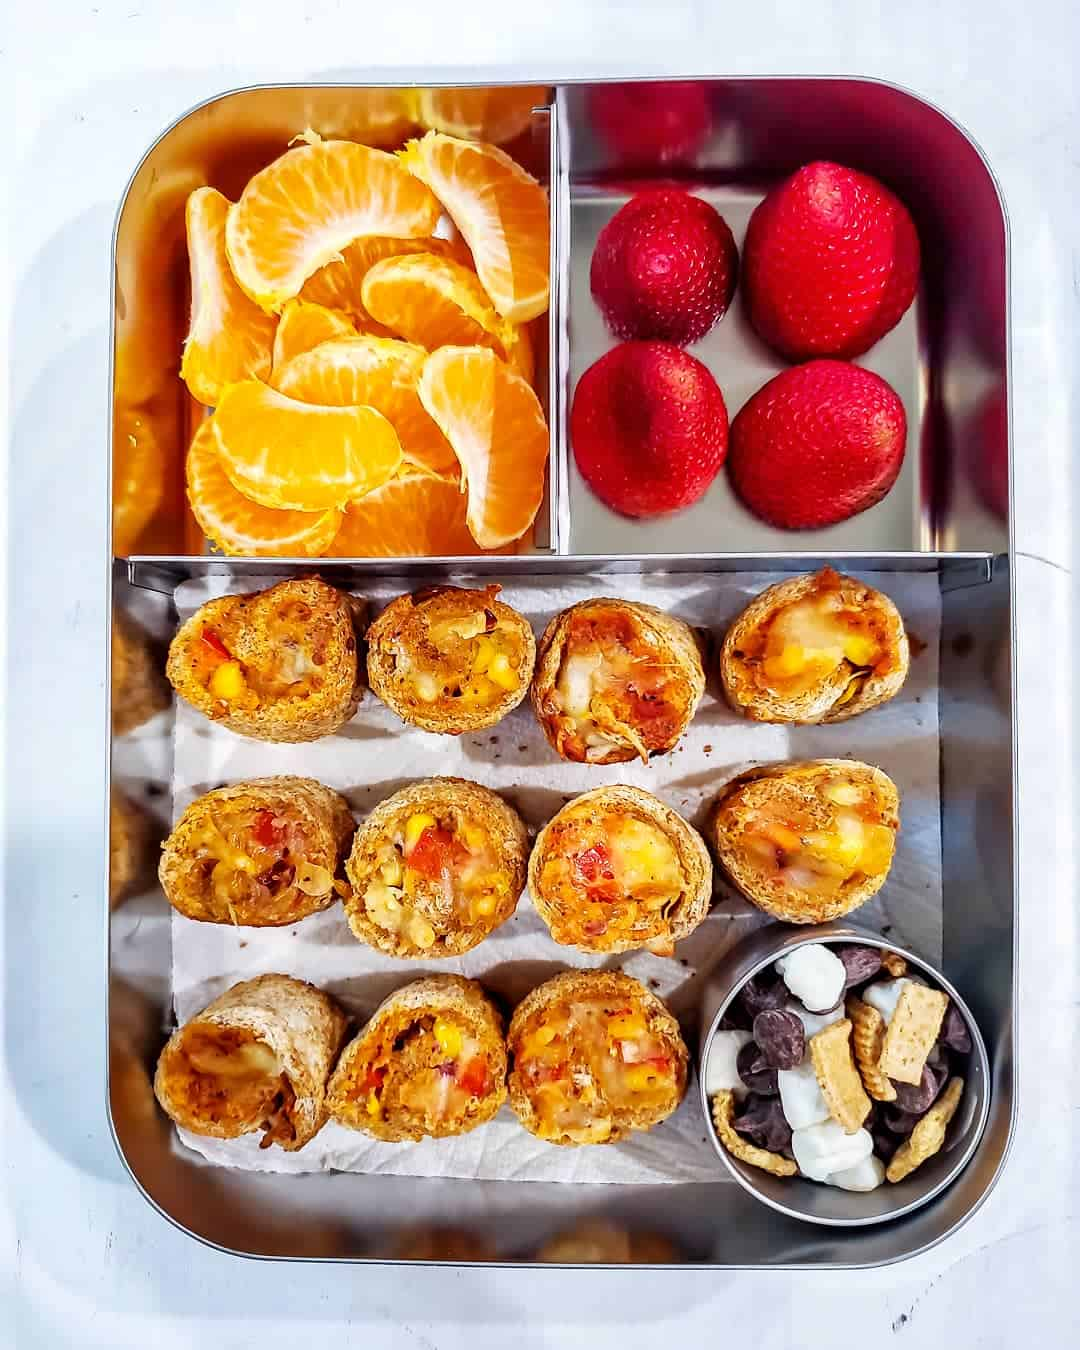 Bread Pizza Roll ups, Strawberries, oranges and smores mix